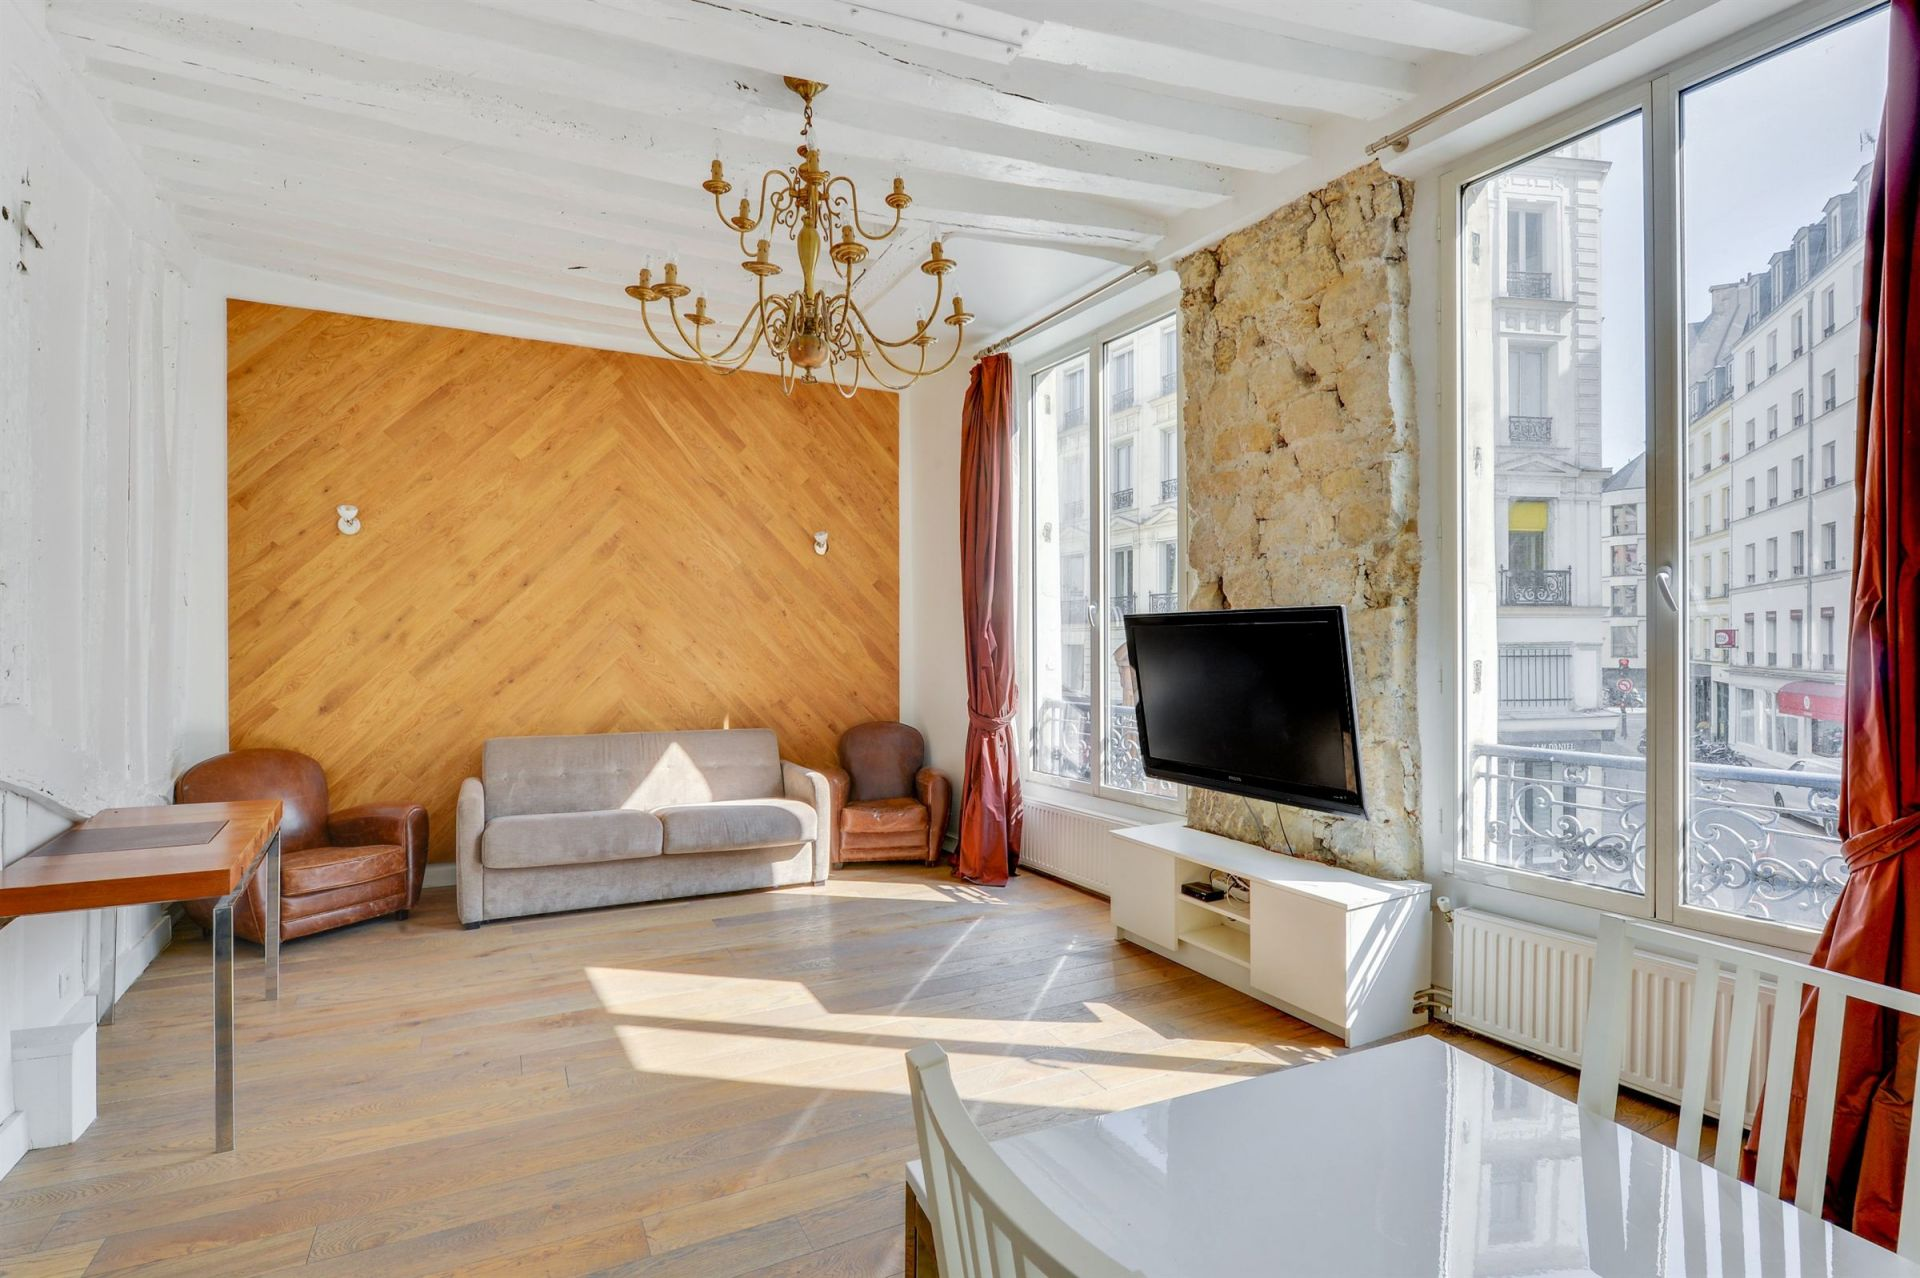 Sale Luxury apartment 3 rooms 2 bedrooms Paris 17 (75017)